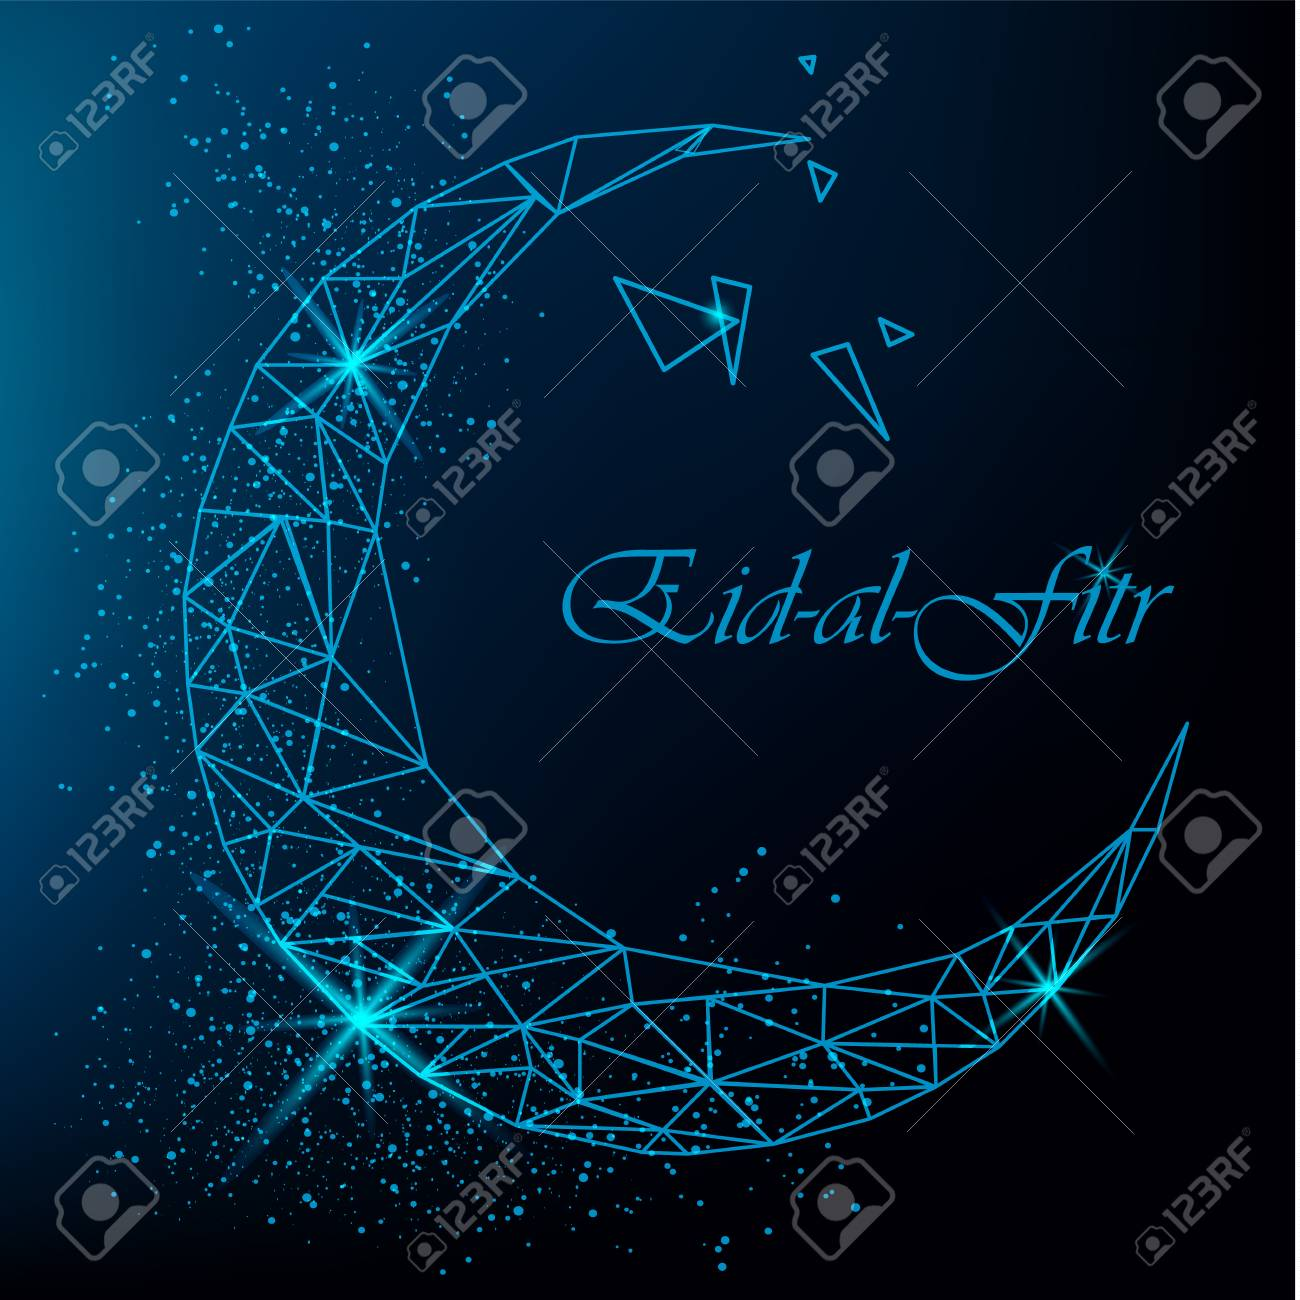 Best Different Eid Al-Fitr Greeting - 79996470-eid-al-fitr-beautiful-greeting-card-with-polygonal-moon-with-glitter-on-blue-background-stock-vector  You Should Have_193253 .jpg